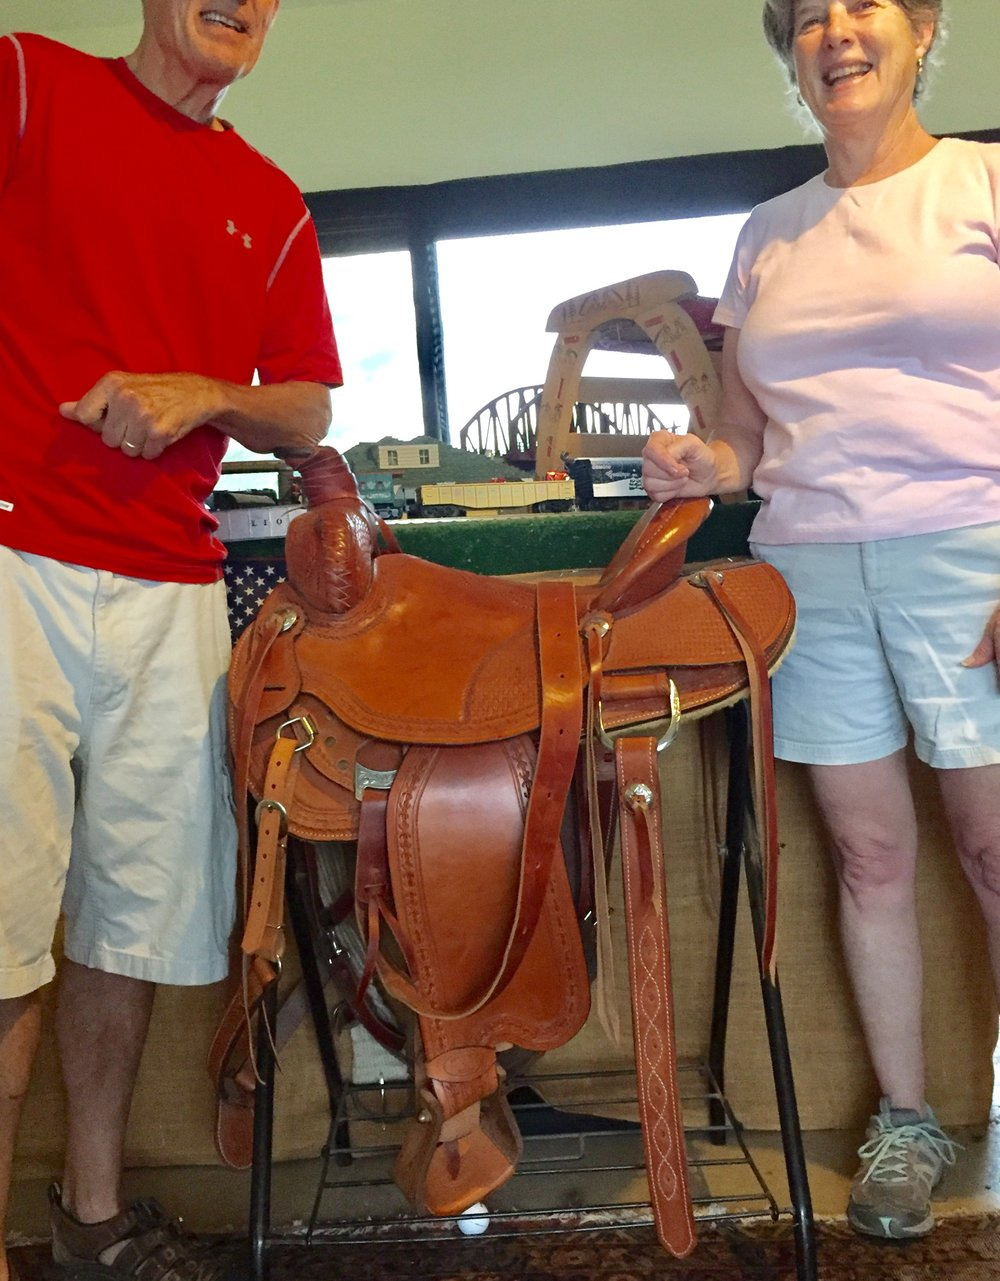 Roger's latest saddle build.